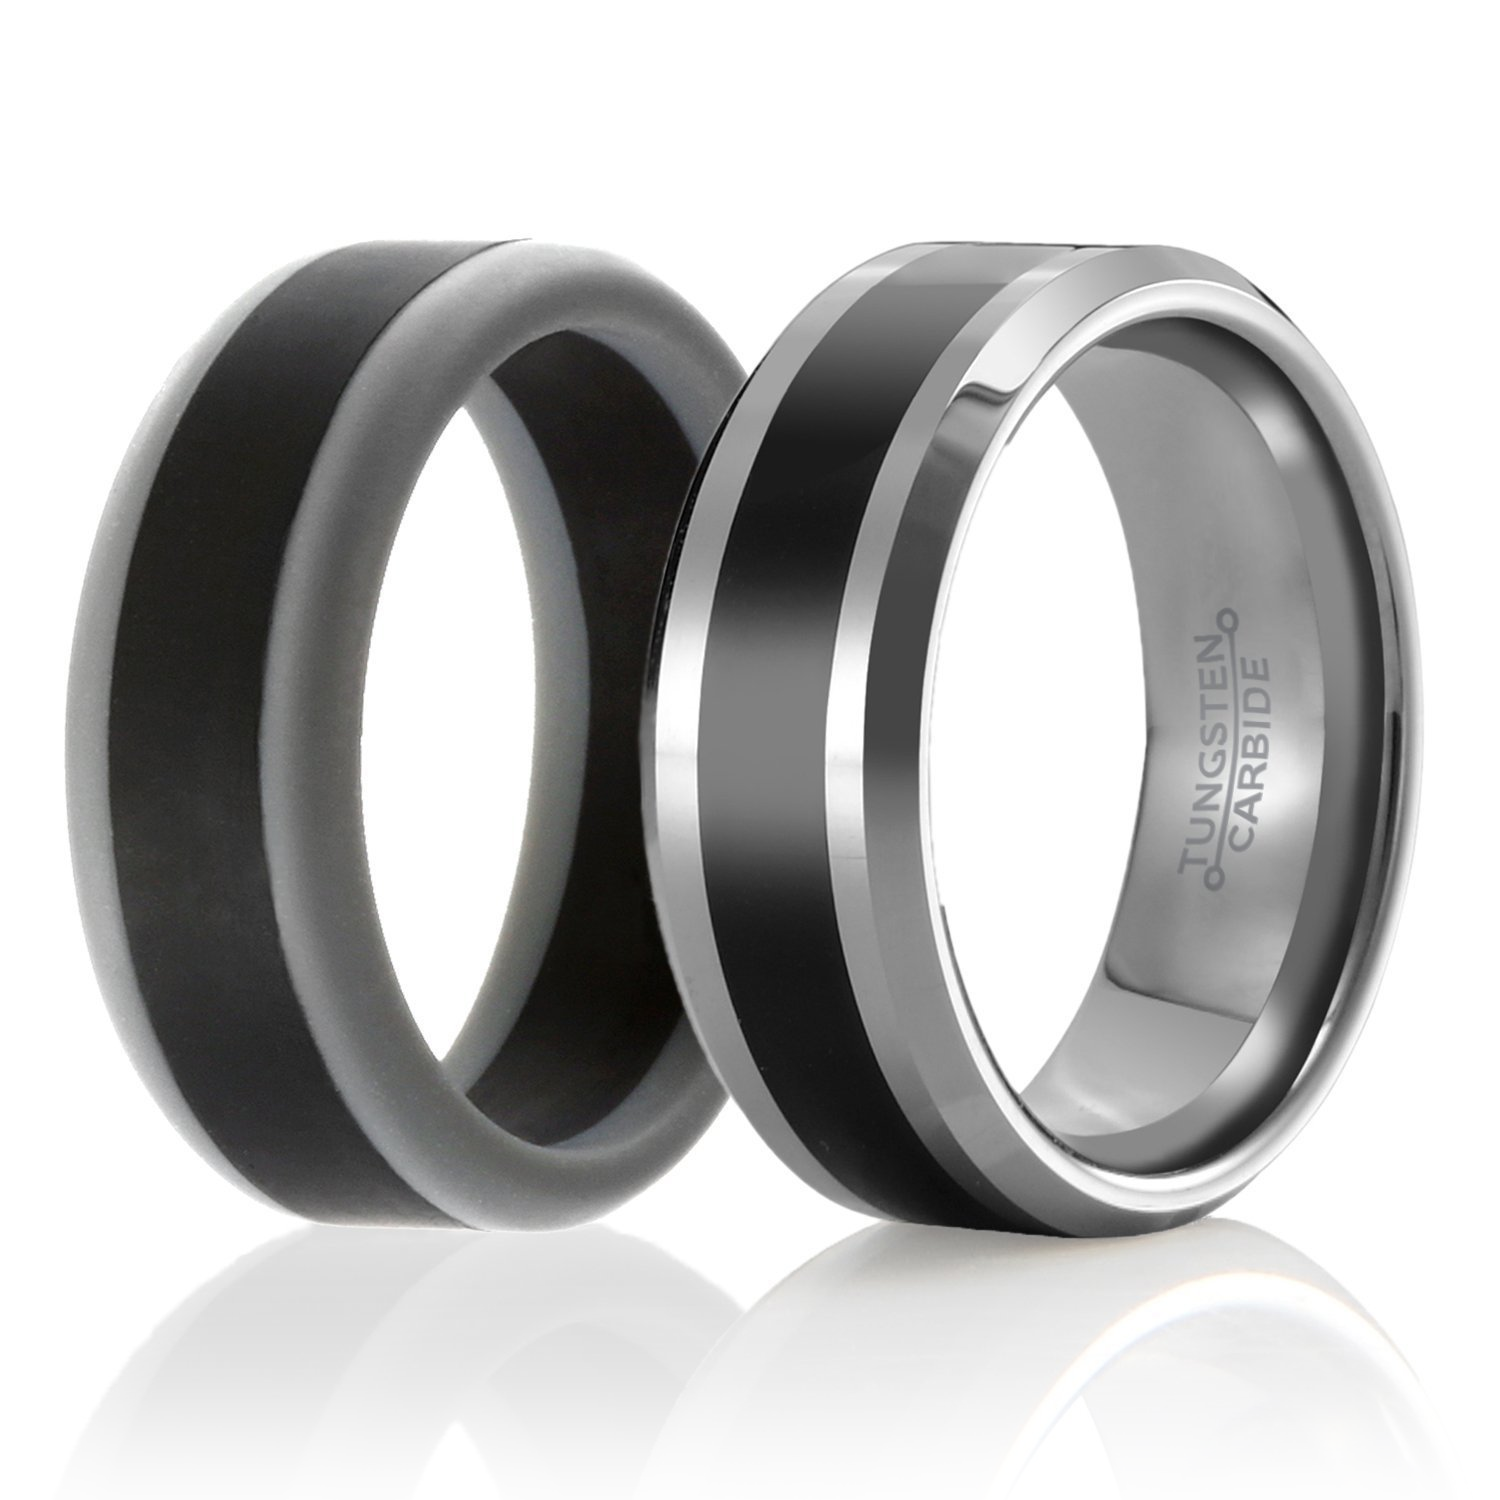 ring tungsten mens jewellery matching silver black man gold brushed anniversary carbide products wedding rings rose band